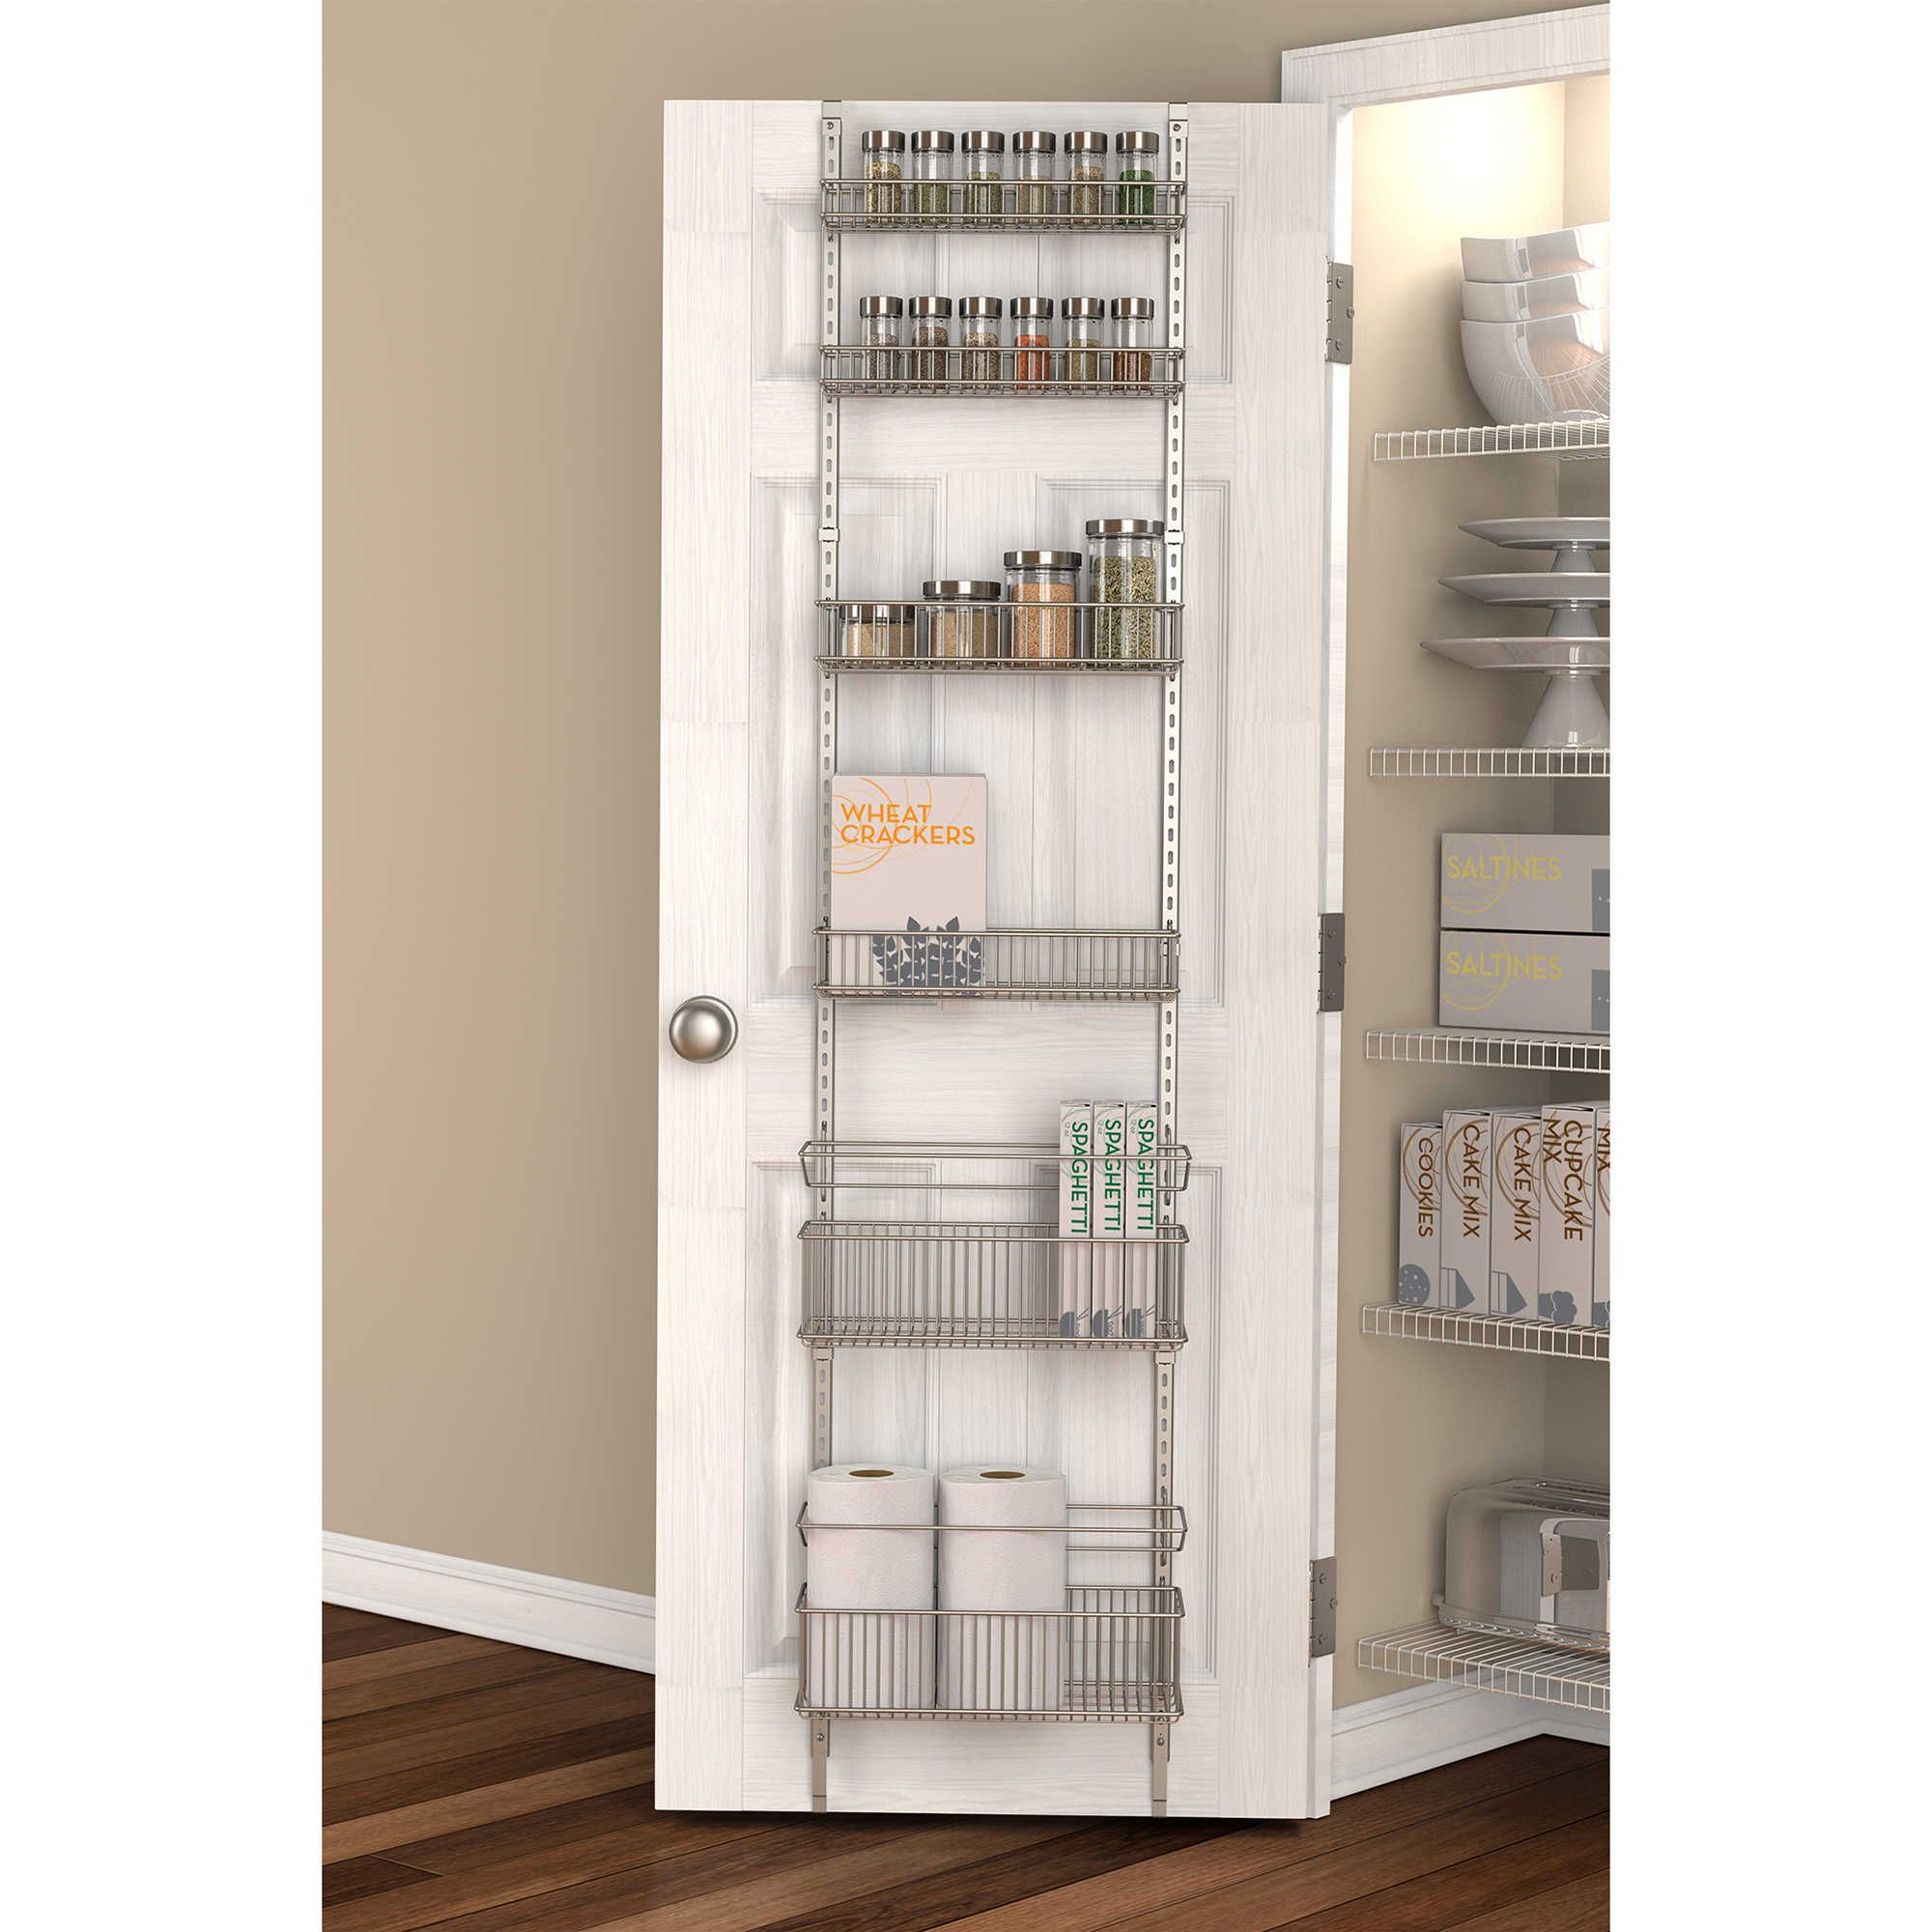 Org premium over the door steel frame pantry organizer